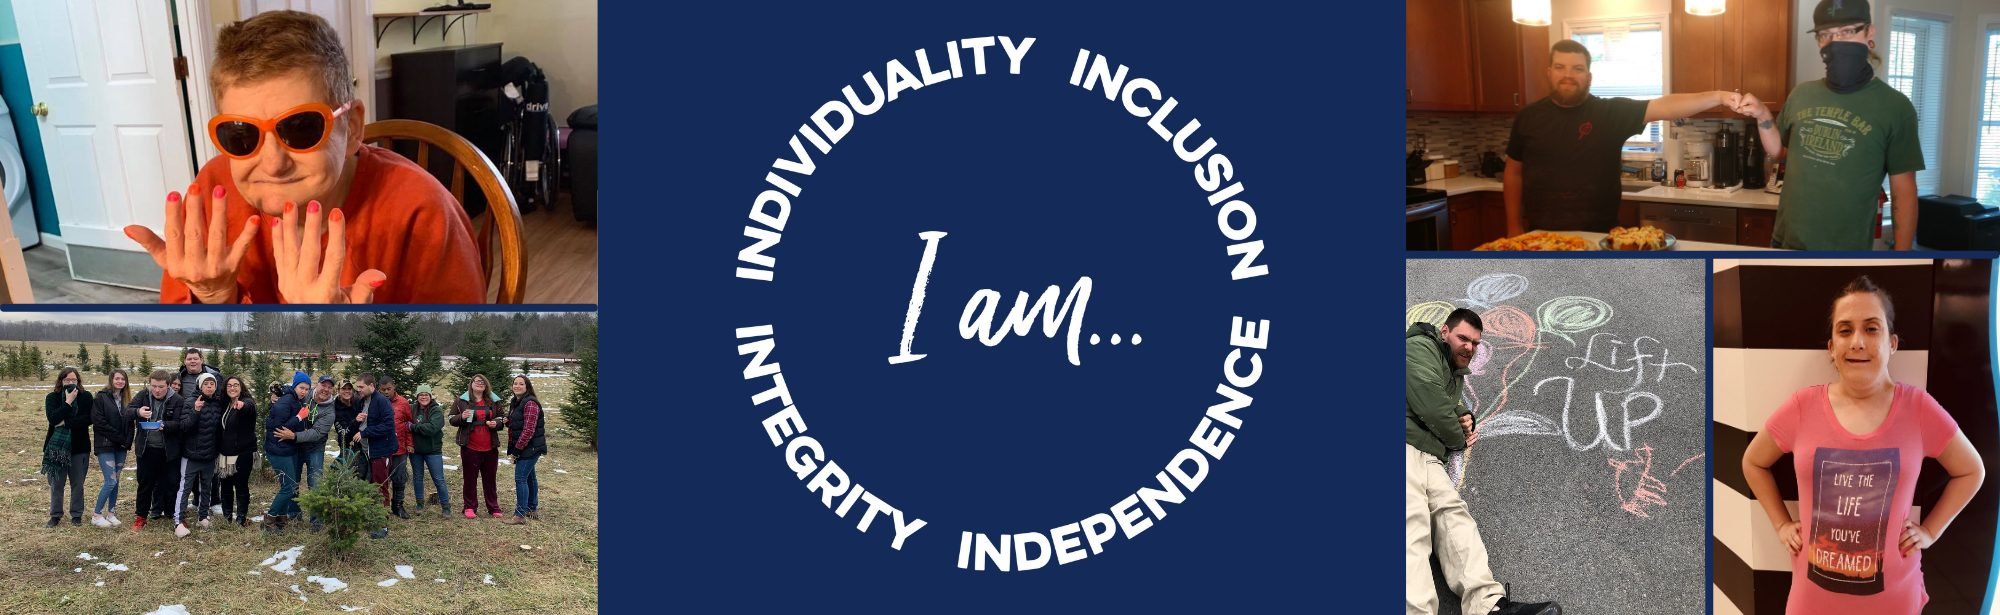 collage of images with I AM individuality inclusion independence integrity